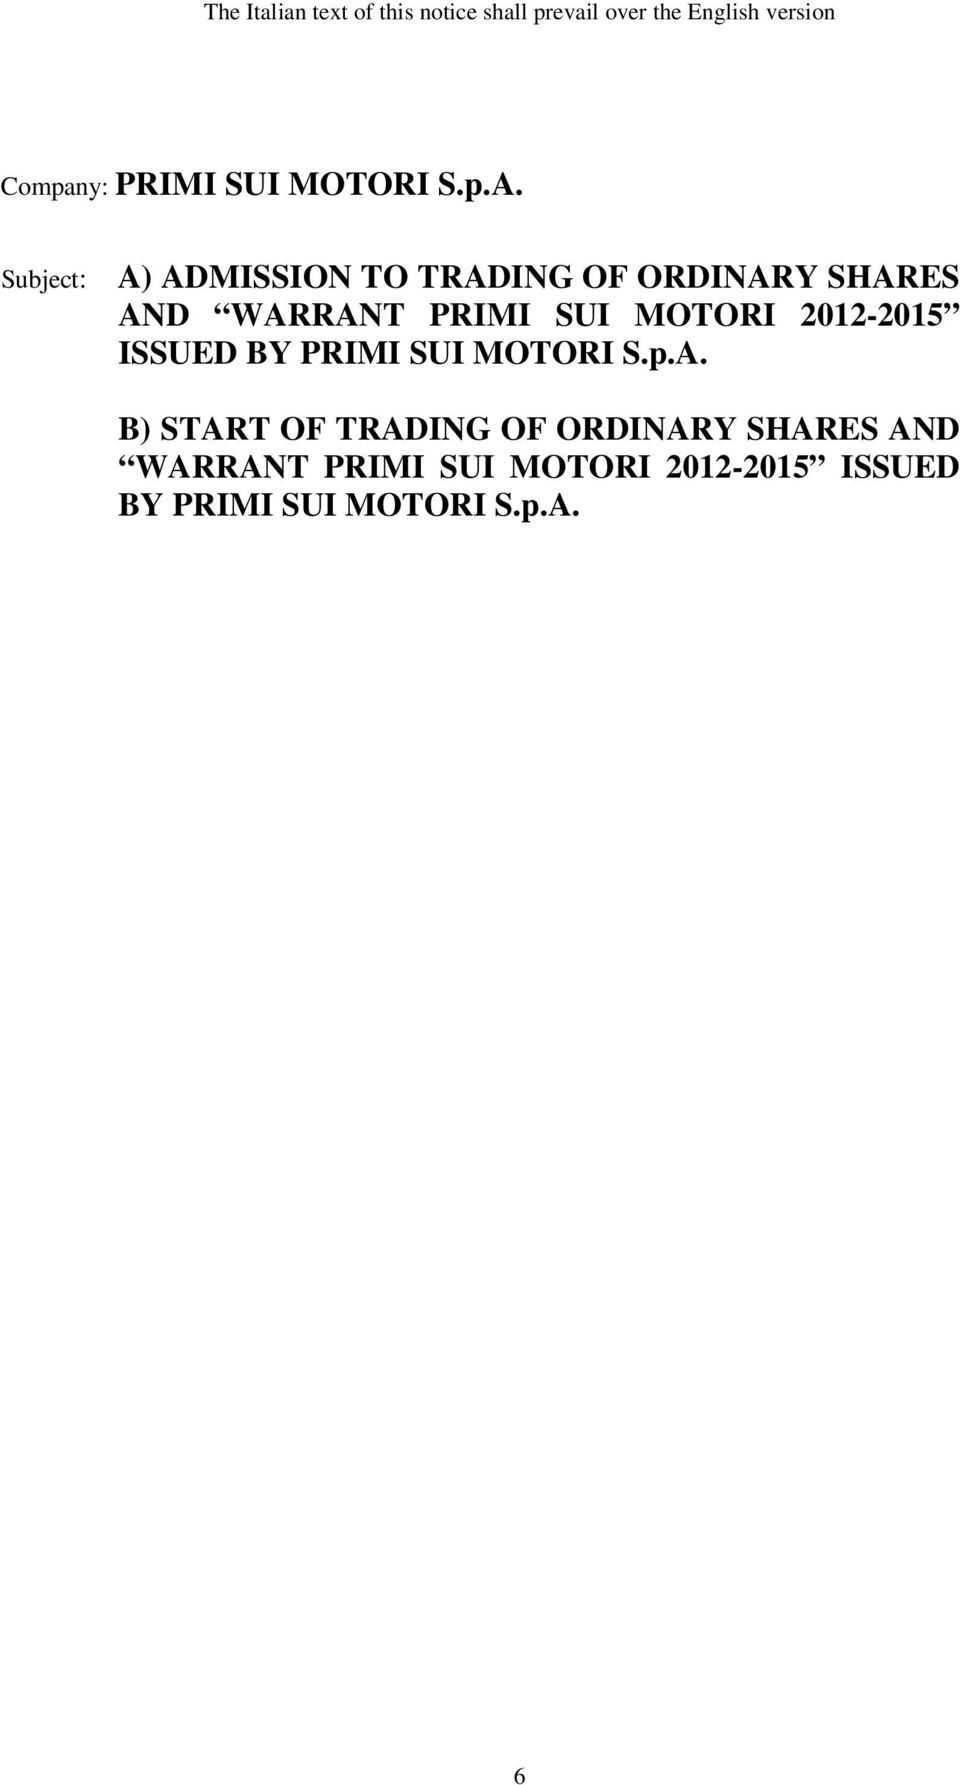 Subject: A) ADMISSION TO TRADING OF ORDINARY SHARES AND WARRANT PRIMI SUI MOTORI